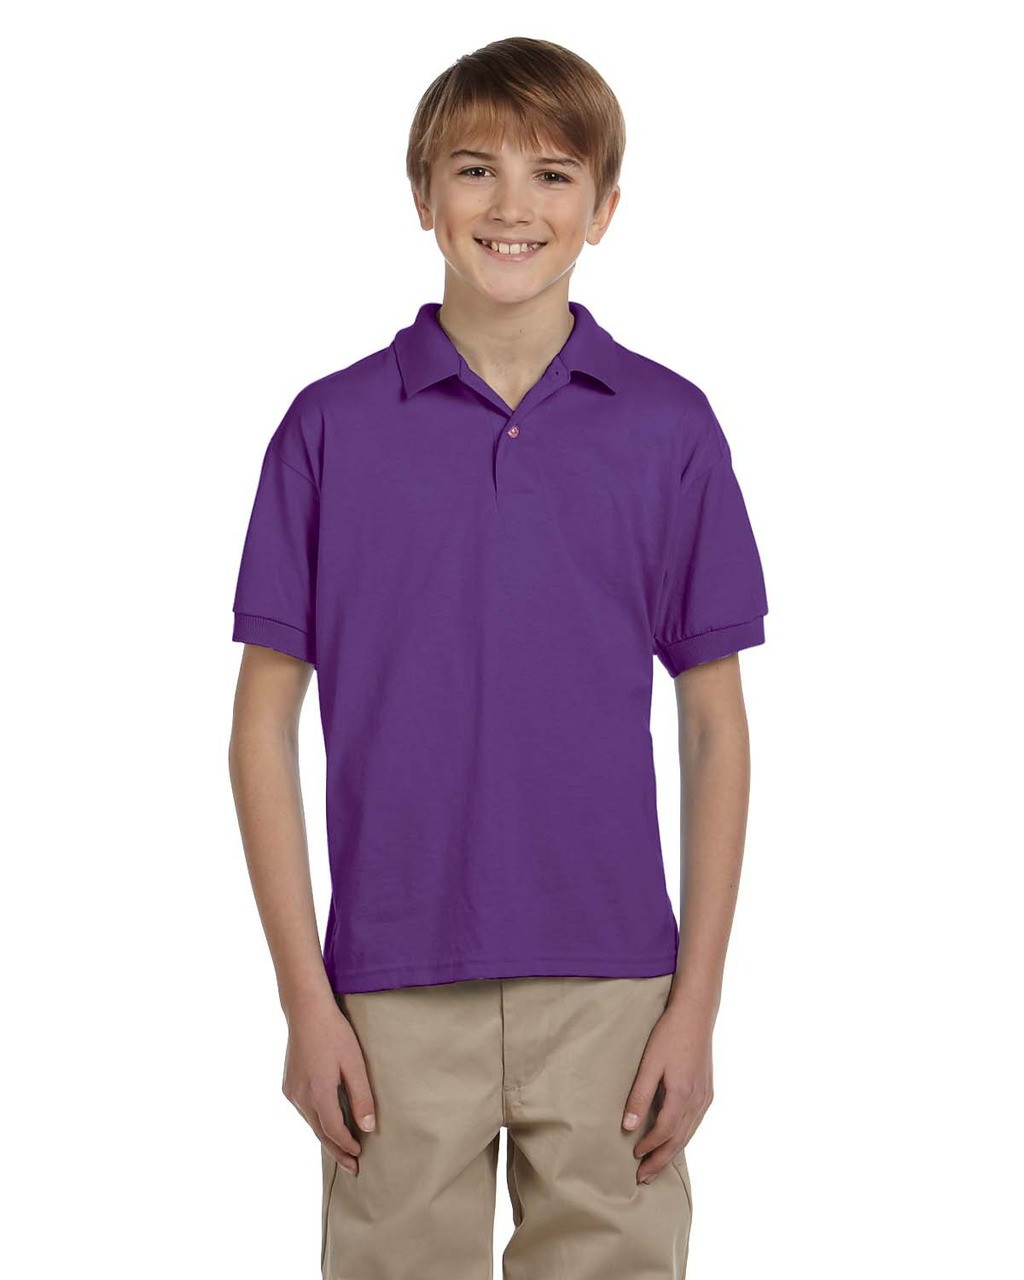 Purple - G880B Gildan DryBlend® Youth 50/50 Jersey Polo Shirt | Blankclothing.ca